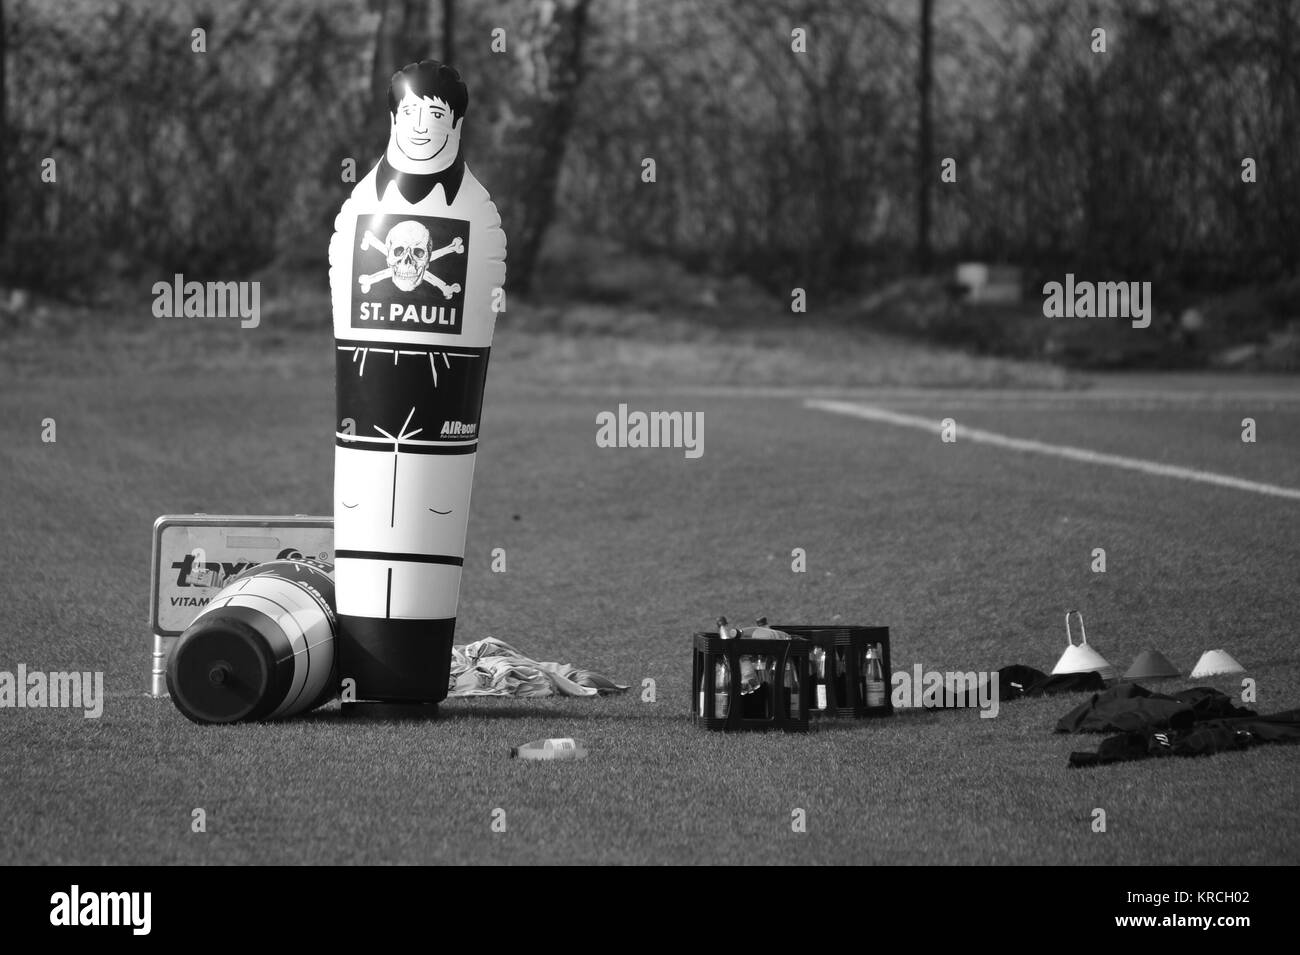 Training FC St. Pauli, Niendorf, Hamburg, Deutschland Stockbild